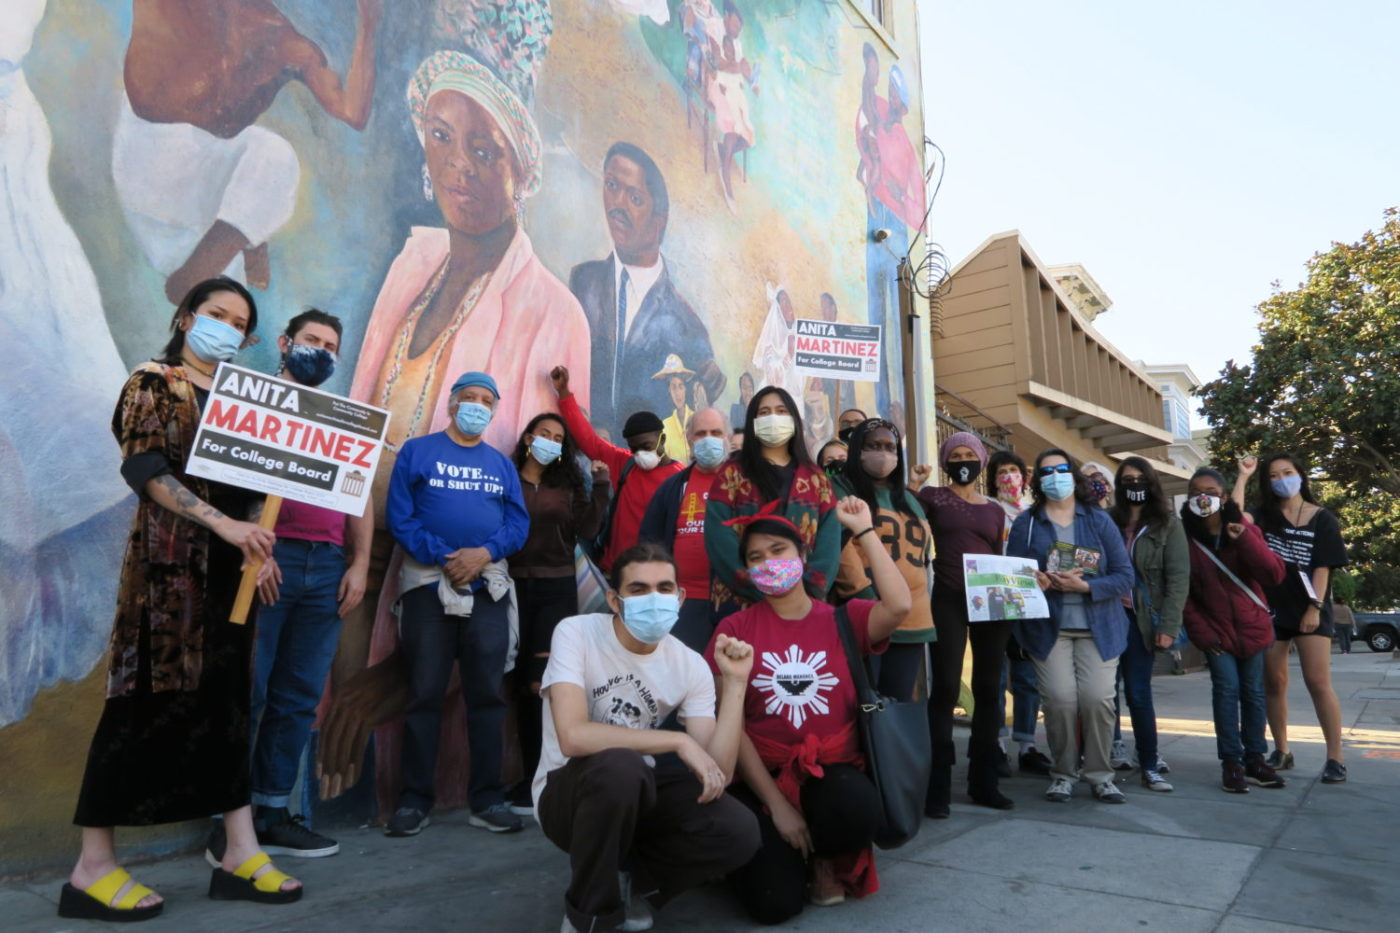 City-College-CCSF-Collective-BSU-SFBV-combine-forces-at-Palou-mural-102620-by-David-Horowitz-1400x933, Our culture of resistance: Dismantle institutional racism at City College now, Local News & Views